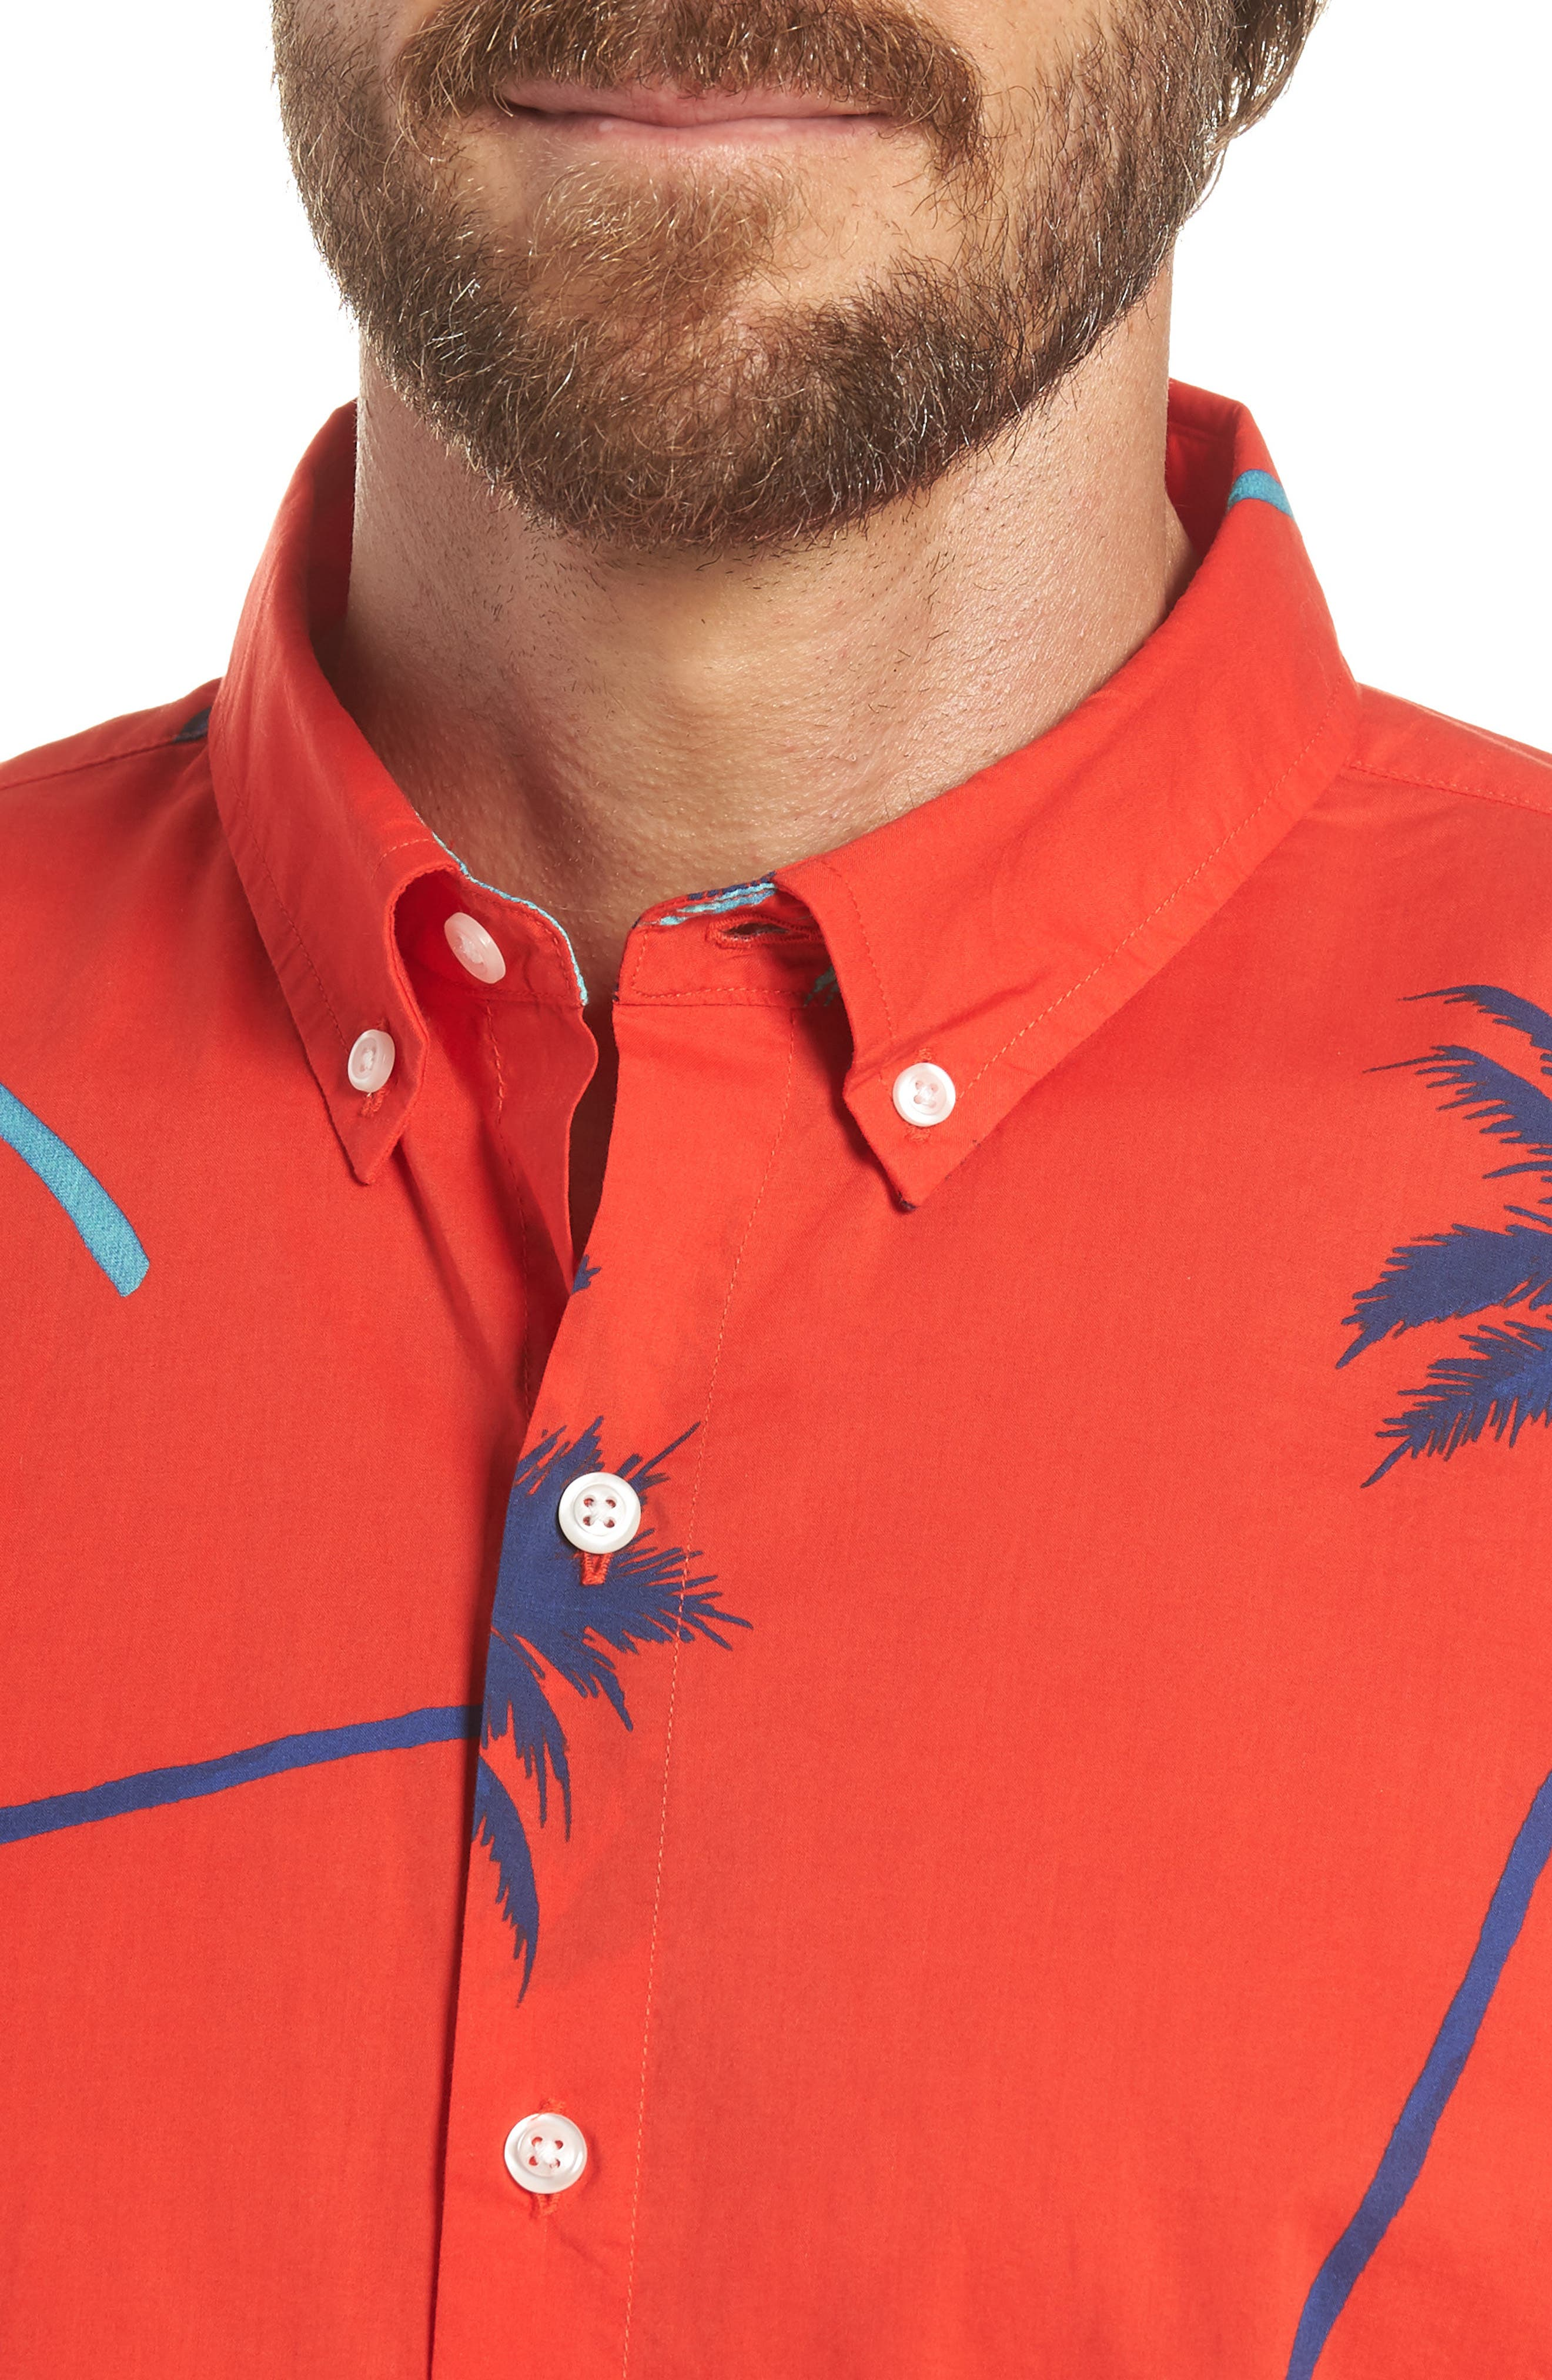 Riviera Slim Fit Palm Print Sport Shirt,                             Alternate thumbnail 2, color,                             Palm Tree View - Goji Berry